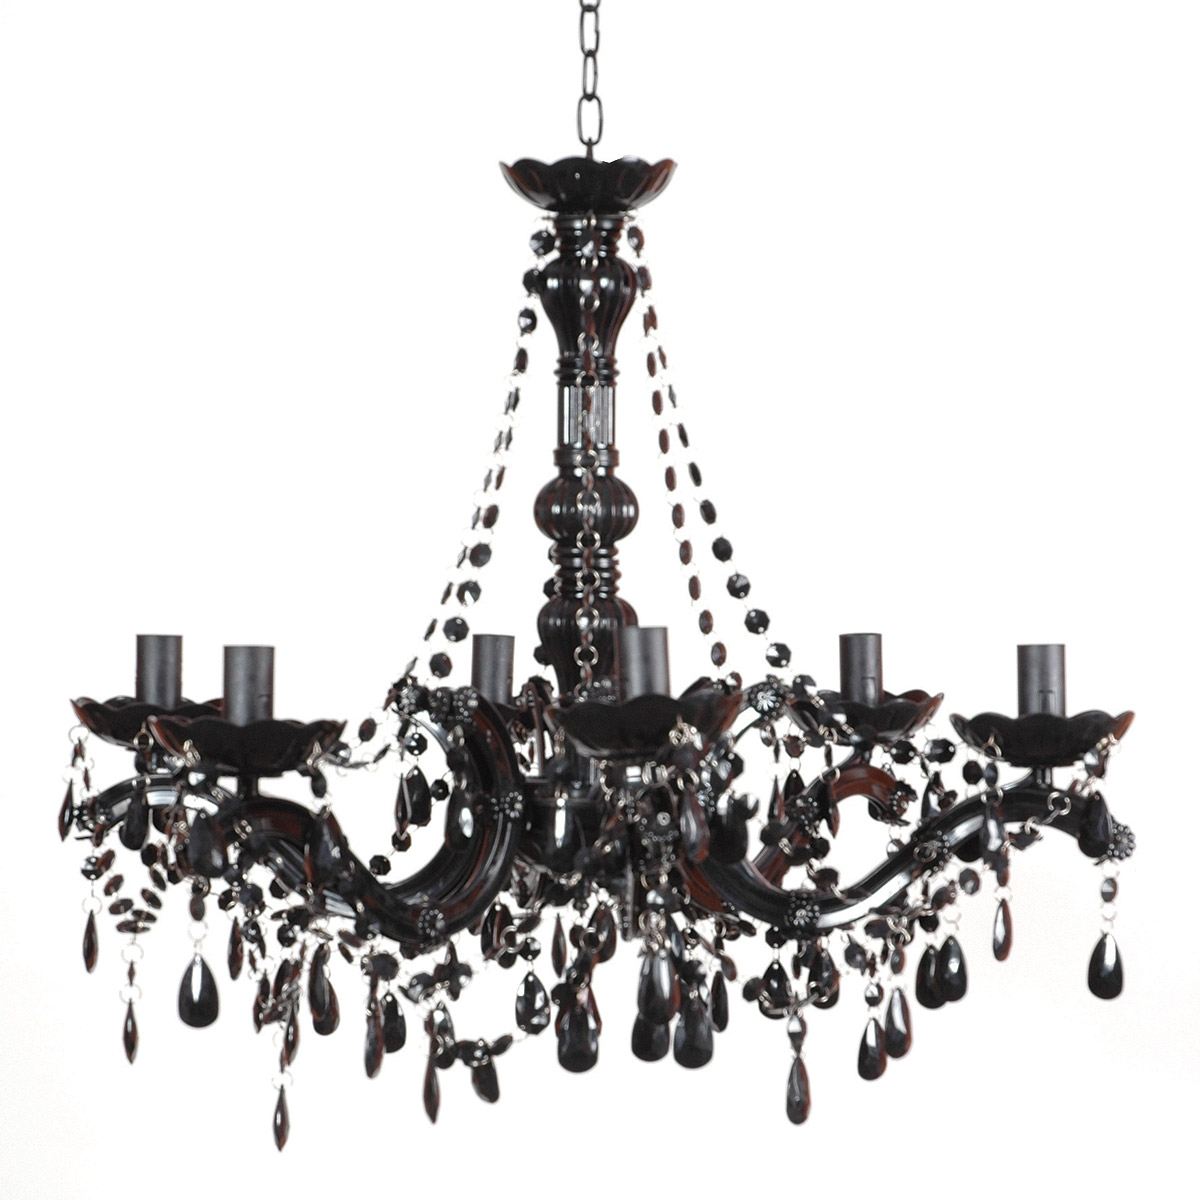 Small Chandeliers For Large Size Of Crystal And Black Chandelier Intended For Large Black Chandelier (View 15 of 15)